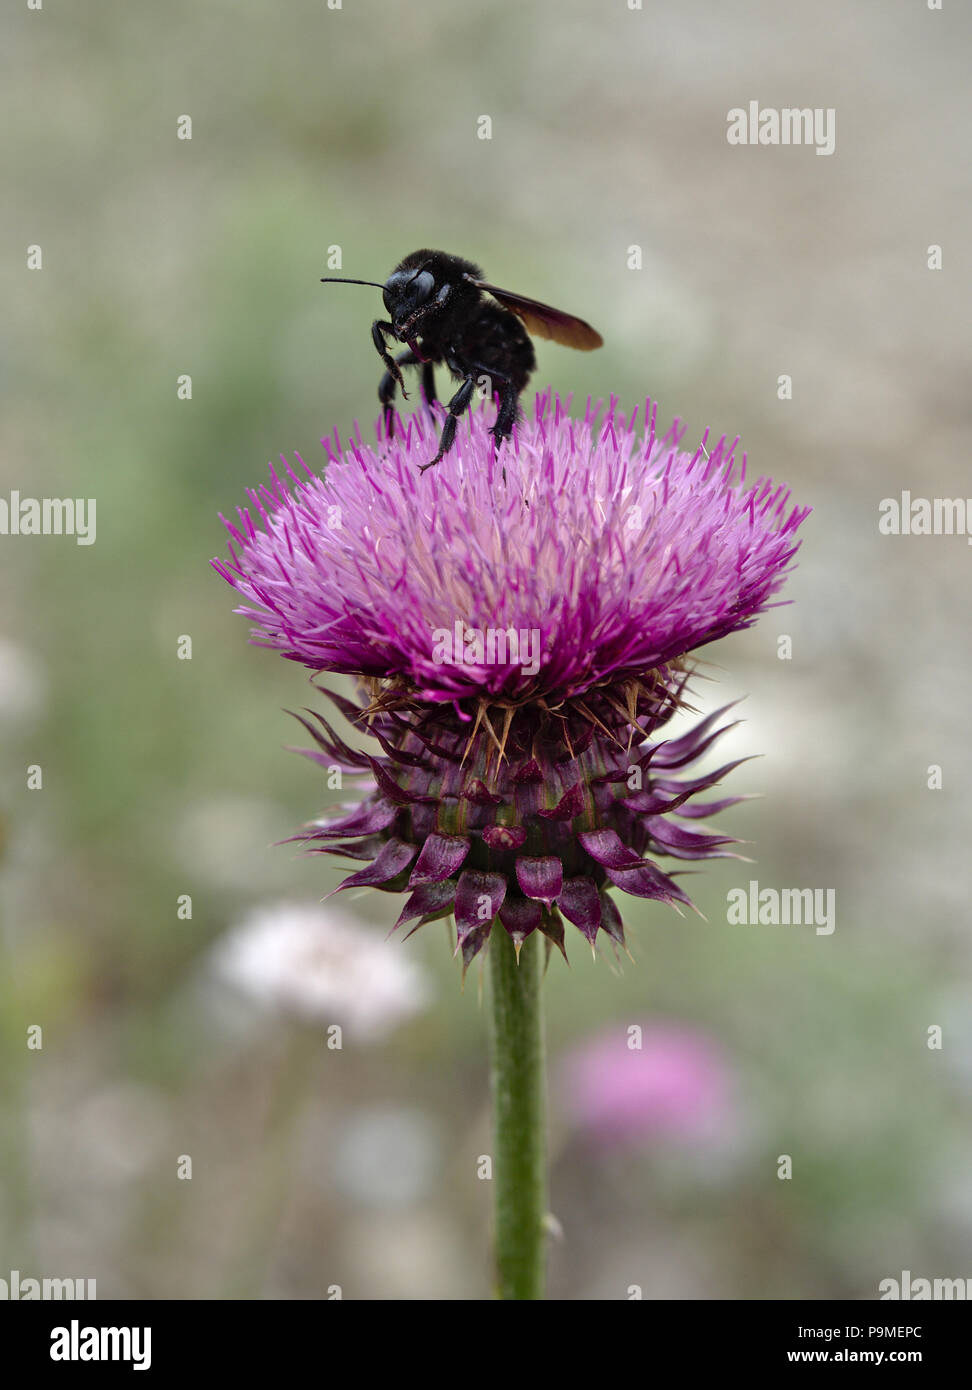 A black bumblebee extracts nectar from a thistle flower in Villa de Merlo, San Luis, Argentina. - Stock Image